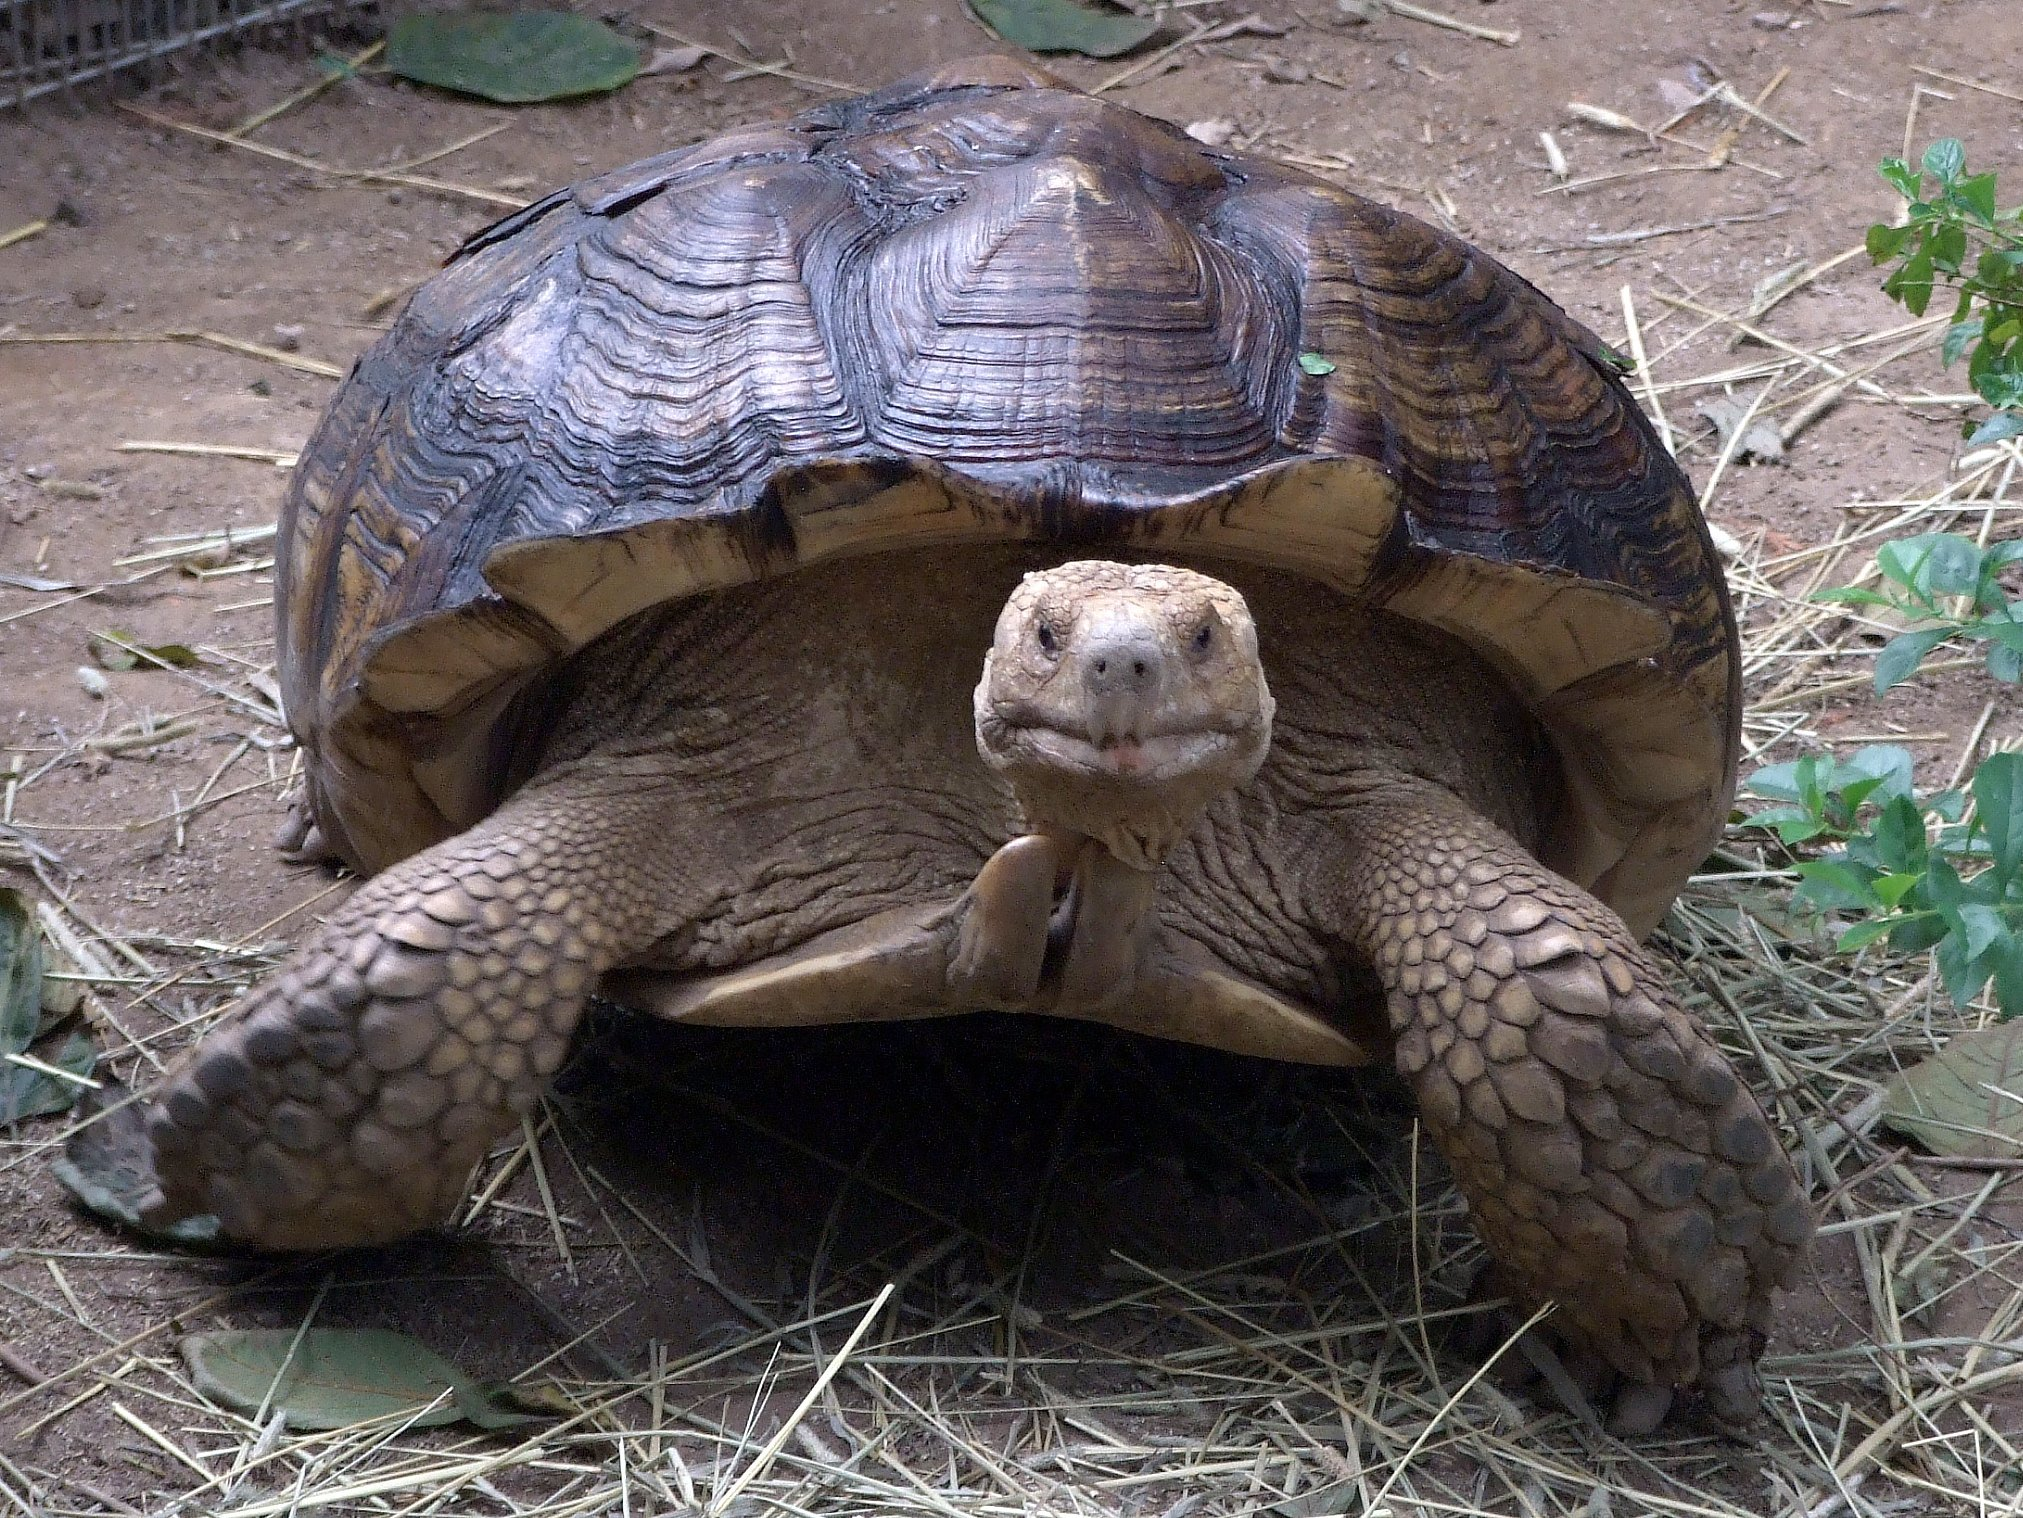 Image of African Spurred Tortoise